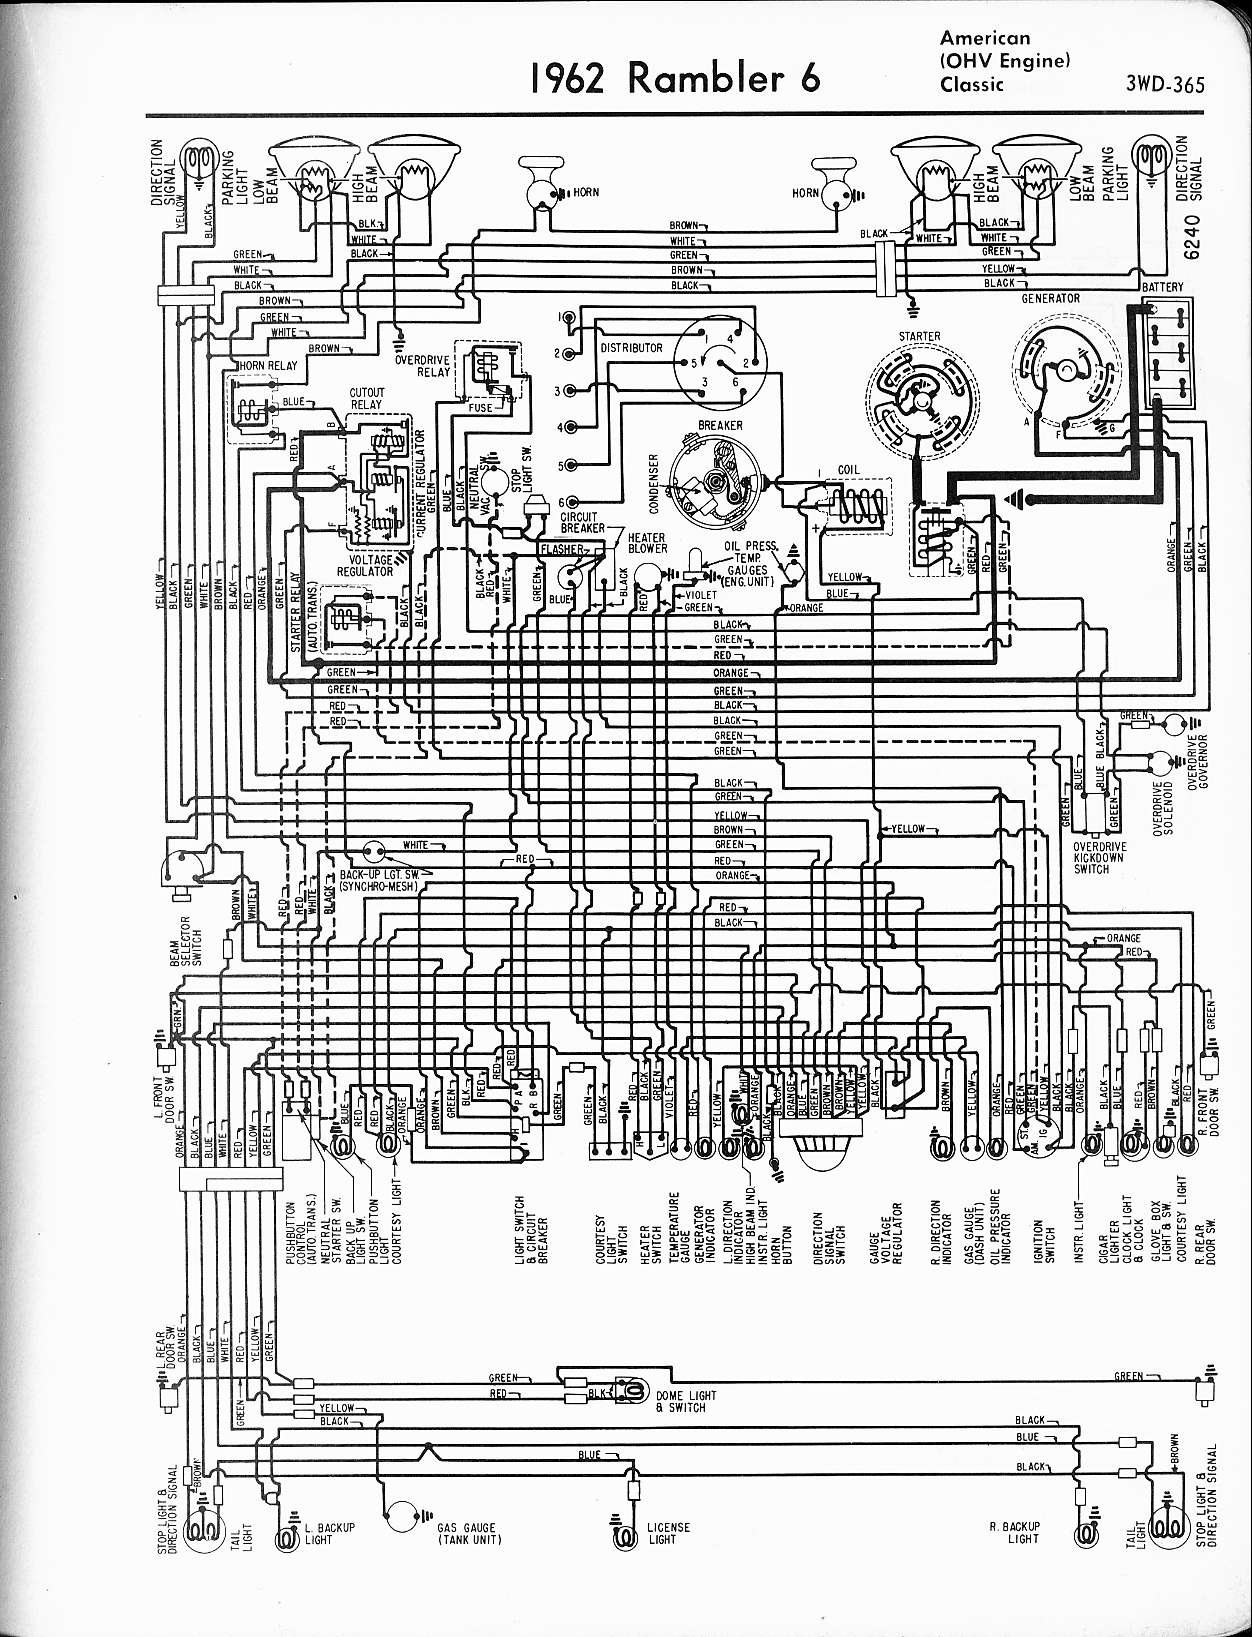 MWire5765 365 rambler wiring diagrams the old car manual project 1964 rambler fuse box diagram at suagrazia.org